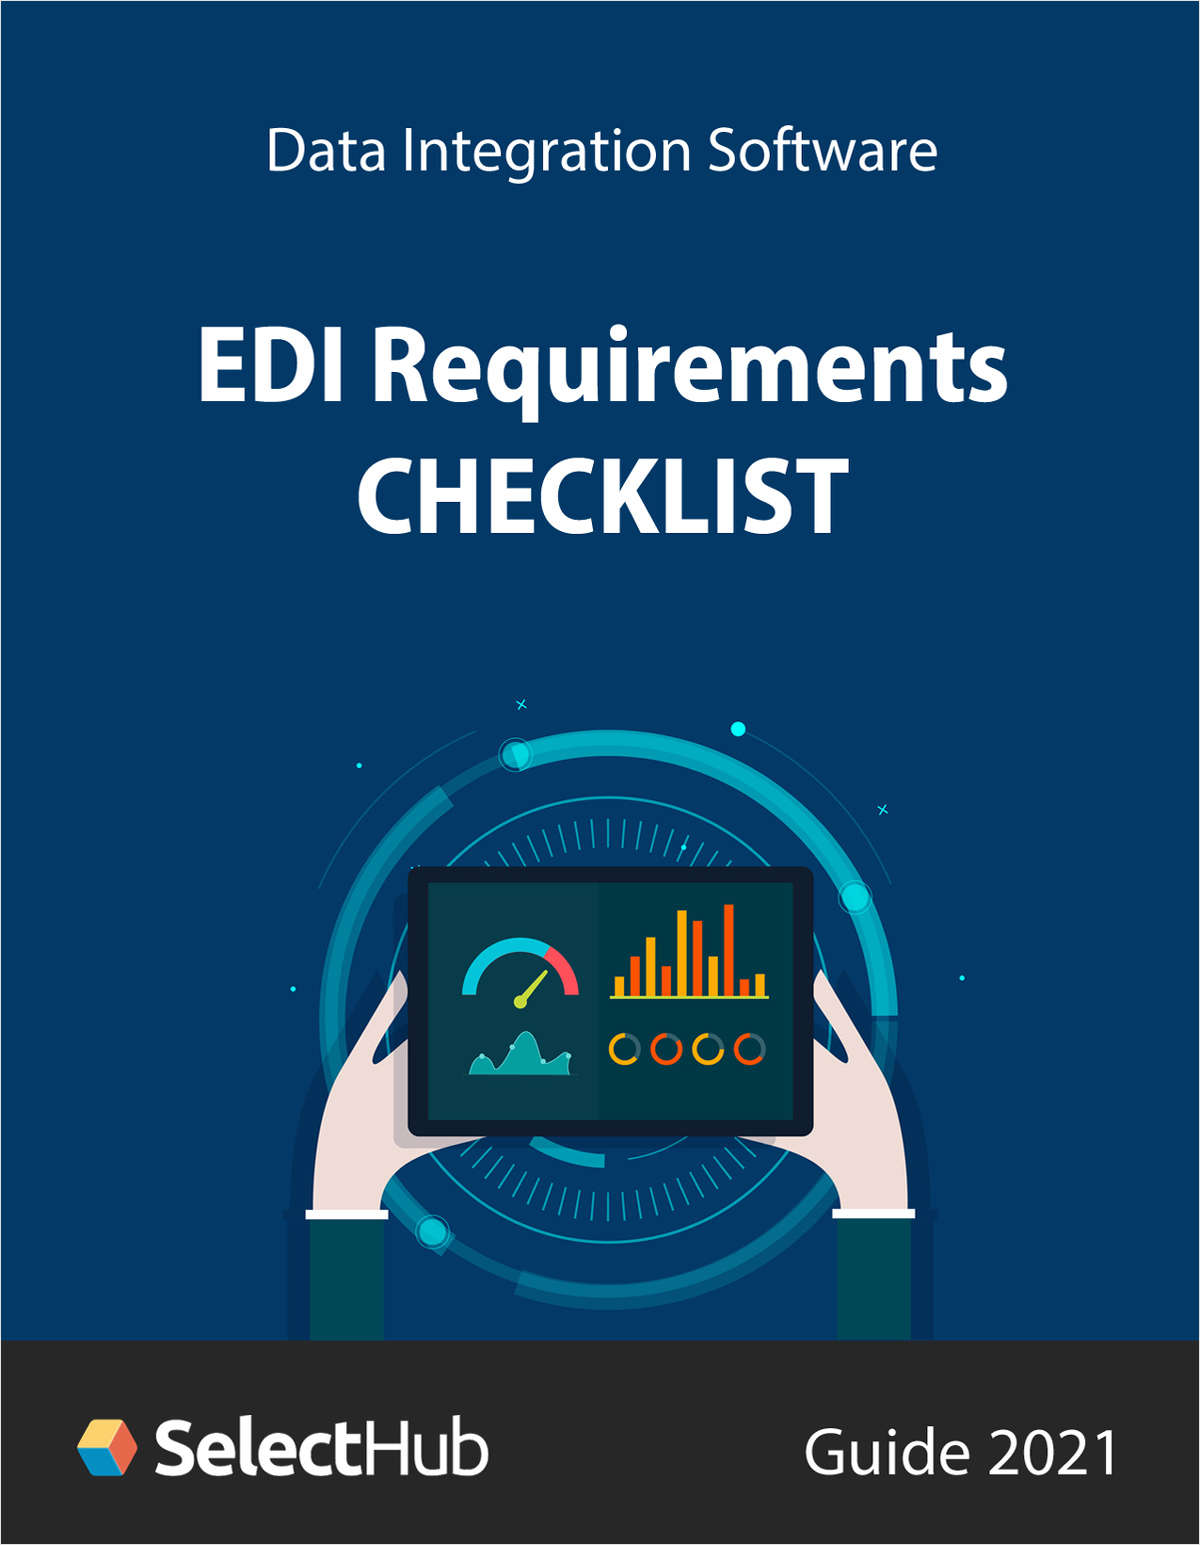 EDI Requirements Checklist for Selecting the Best EDI System